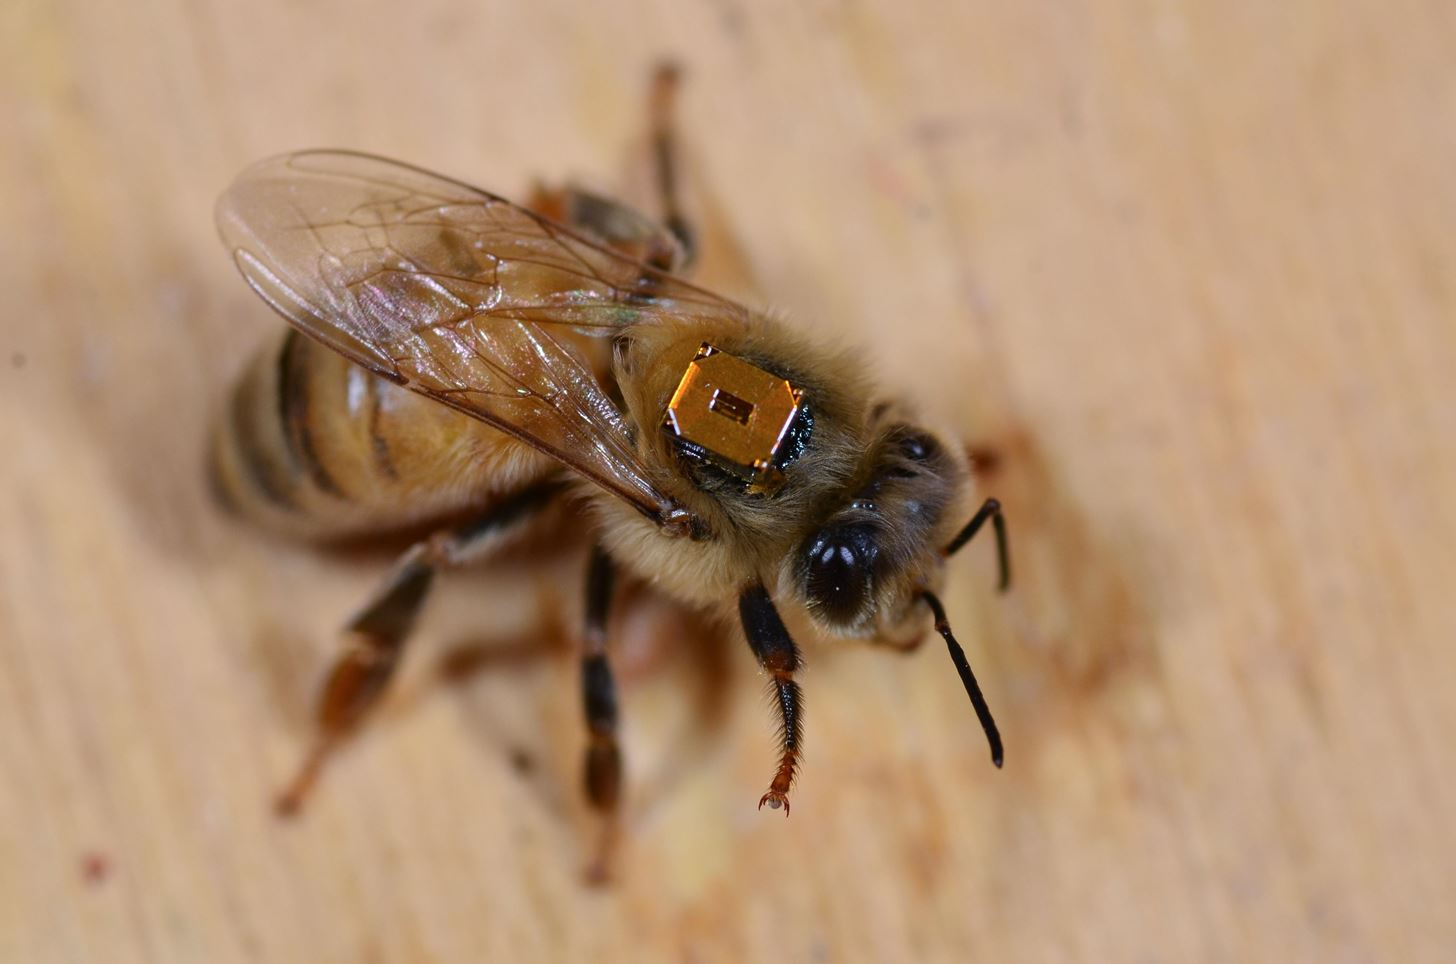 Biggest Bee Study Yet Shows Devastating Effects of Neonicotinoids Across the Globe